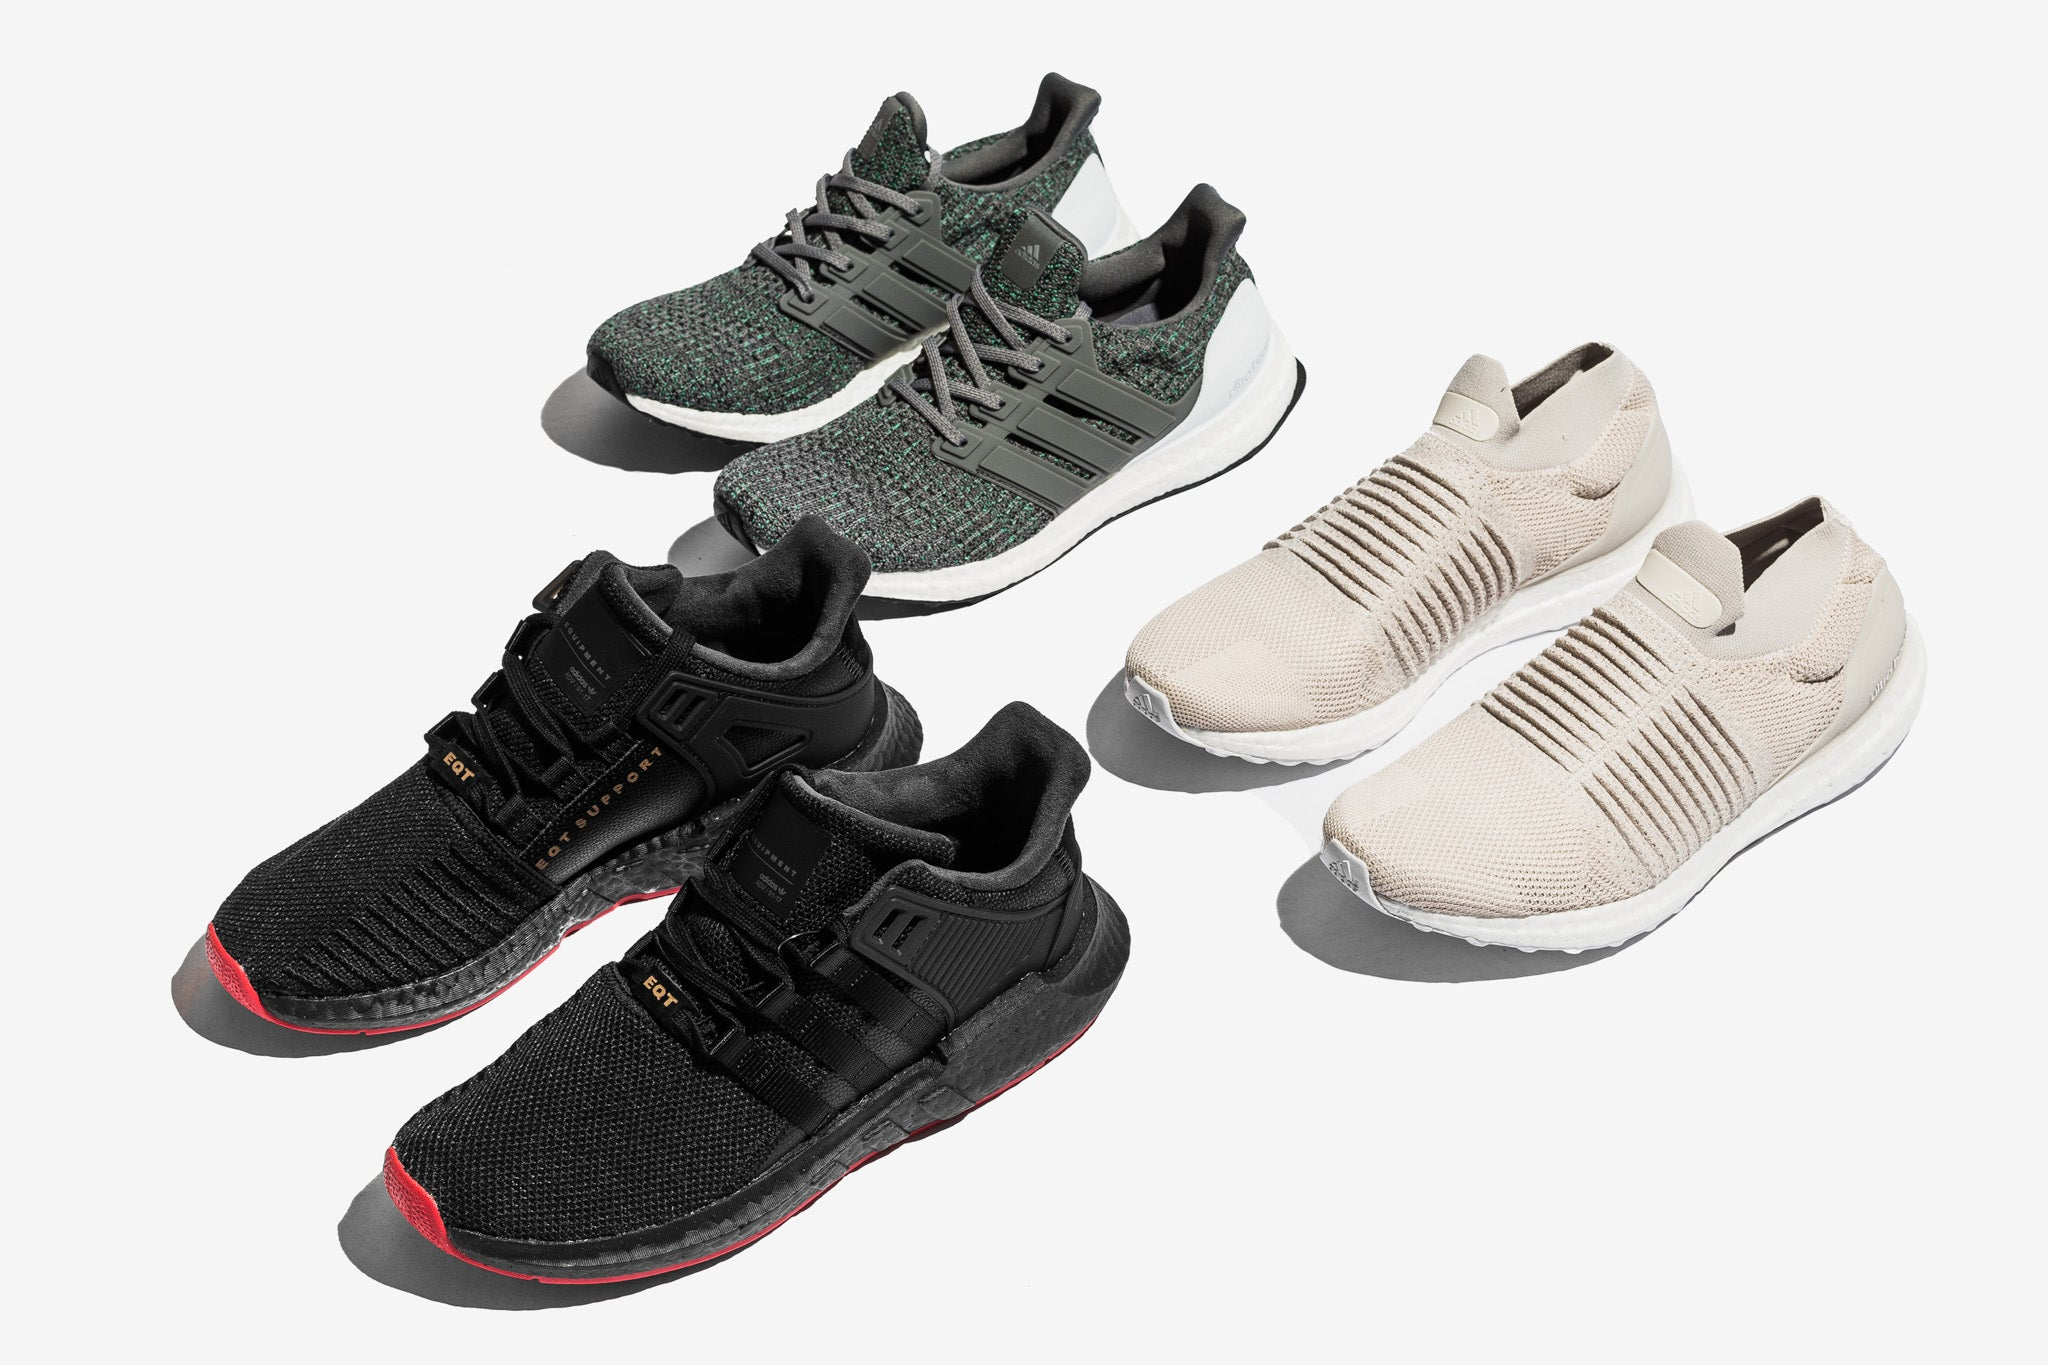 adidas Boost Collection 02.08.18